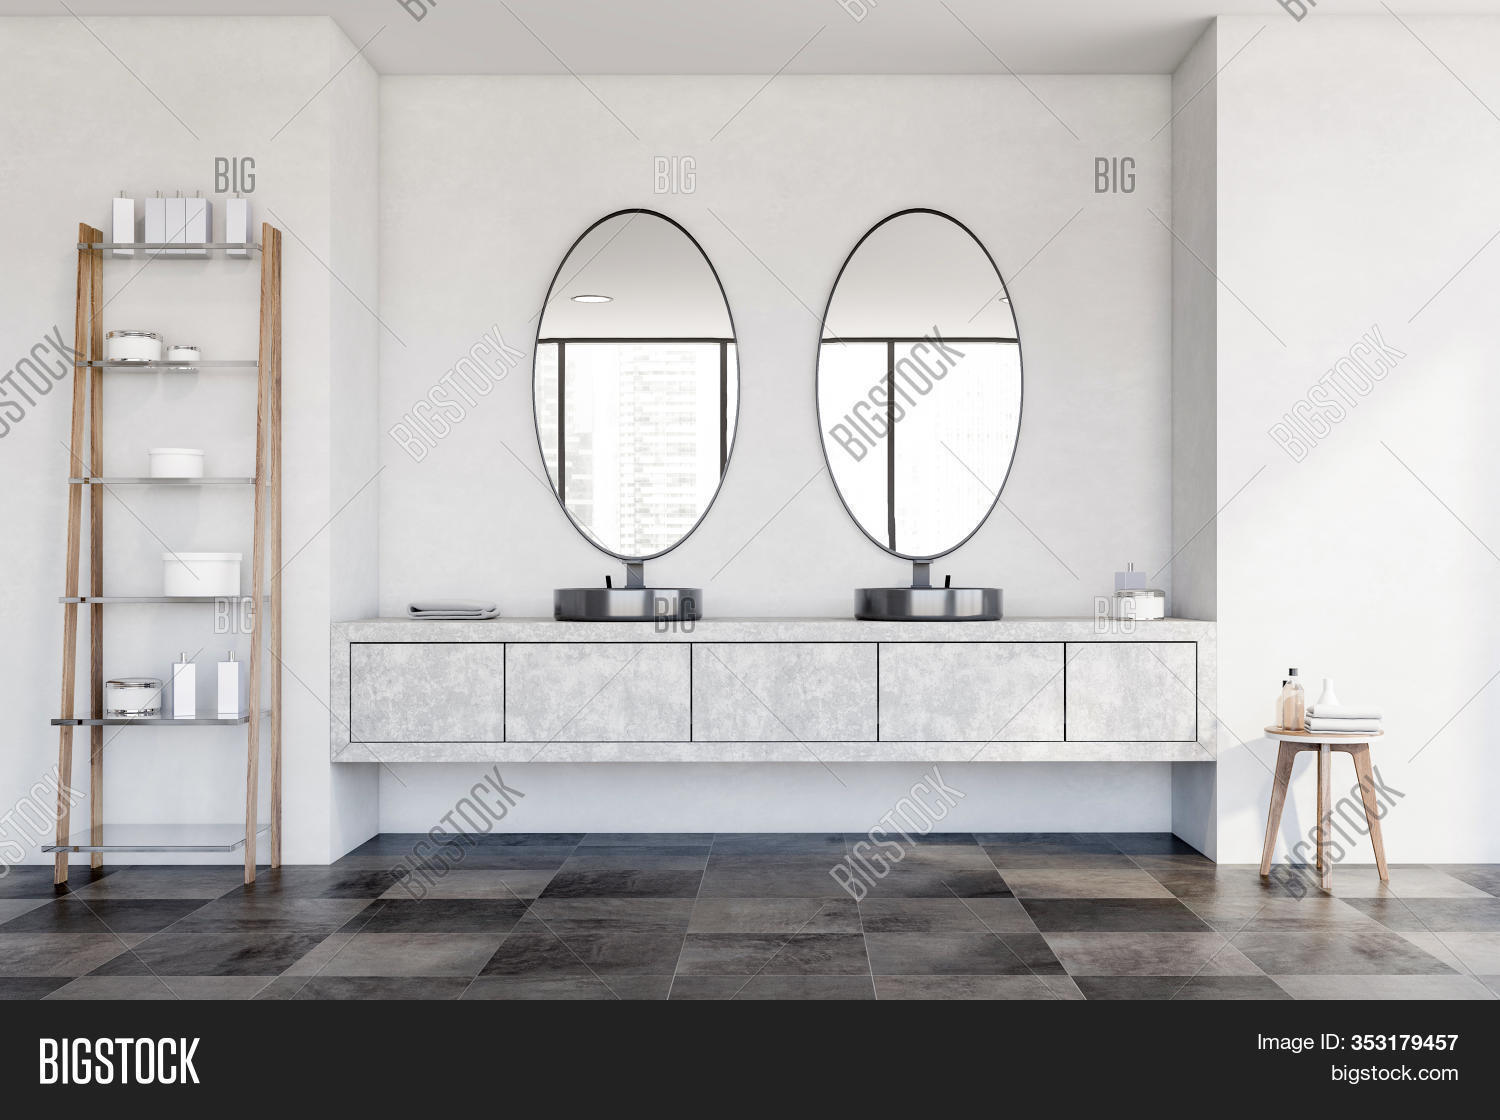 Round Double Sink Image Photo Free Trial Bigstock